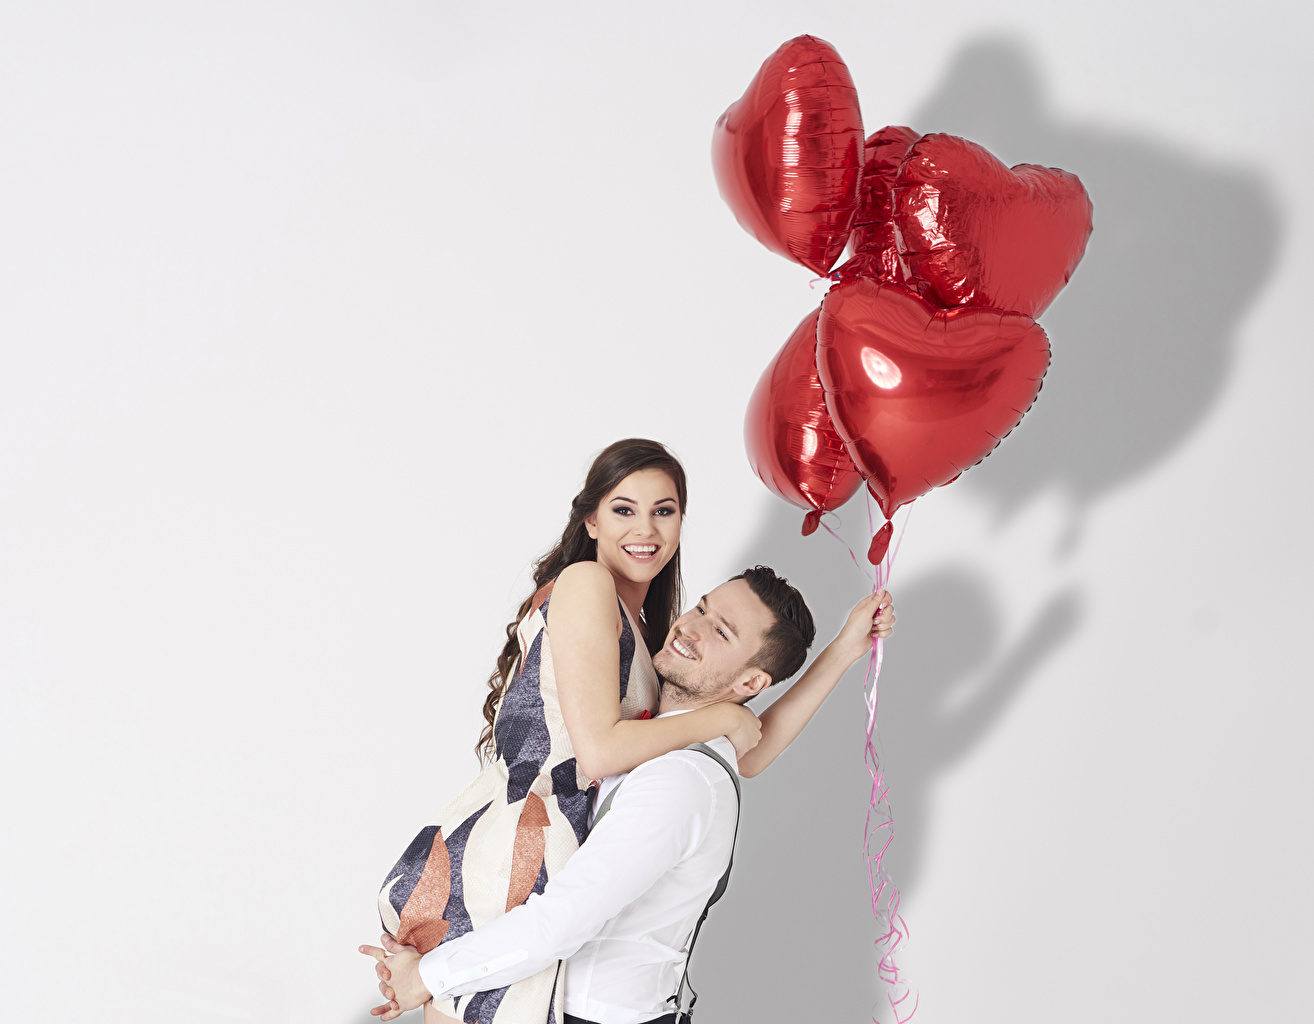 Pictures Valentine's Day Brown haired Man Smile Heart Toy balloon Two Love embrace young woman White background Men balloons 2 Hug hugs Girls female hugging